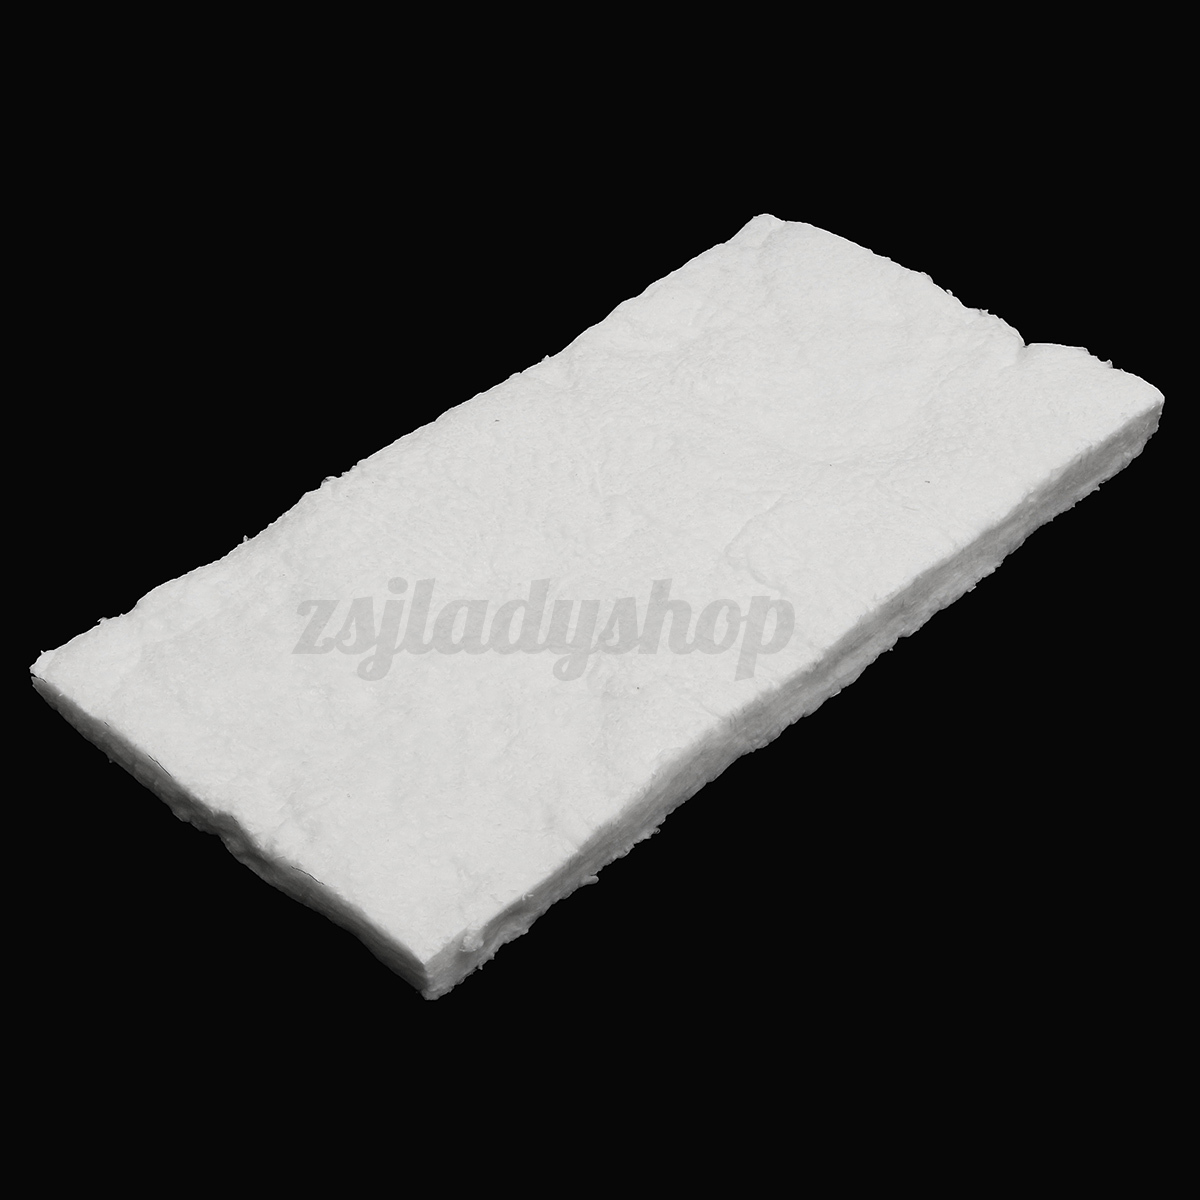 Ceramic fiber insulation mat blanket wool 2600 f for Glass fiber blanket insulation